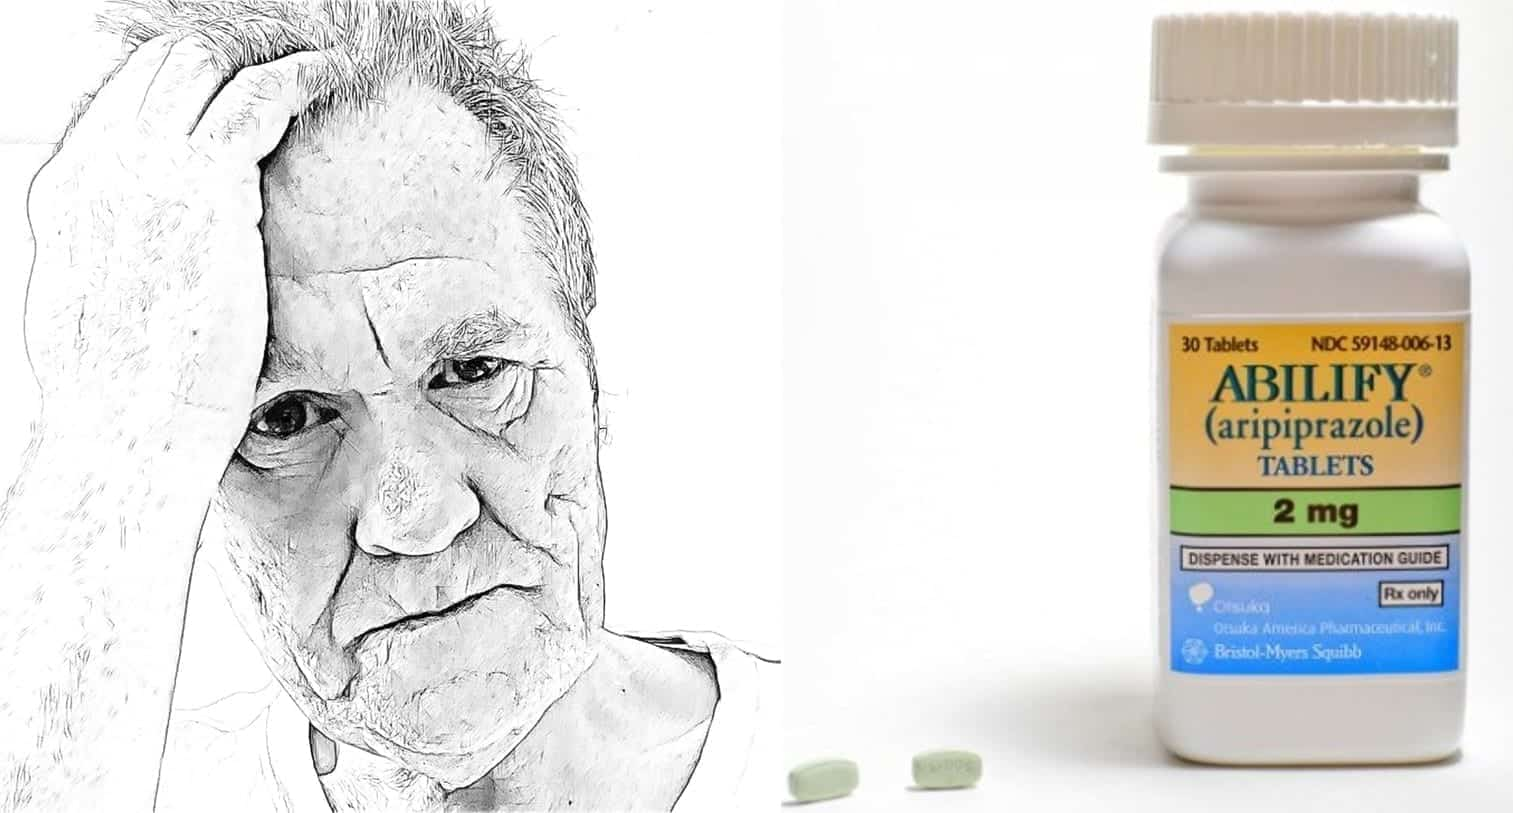 Abilify causes some patients a great deal of despair. Composite image: man courtesy of www.Pixabay.com under CC0 Creative Commons; Abilify courtesy of https://commons.wikimedia.org/wiki/File:Abilify_2mg.jpg.